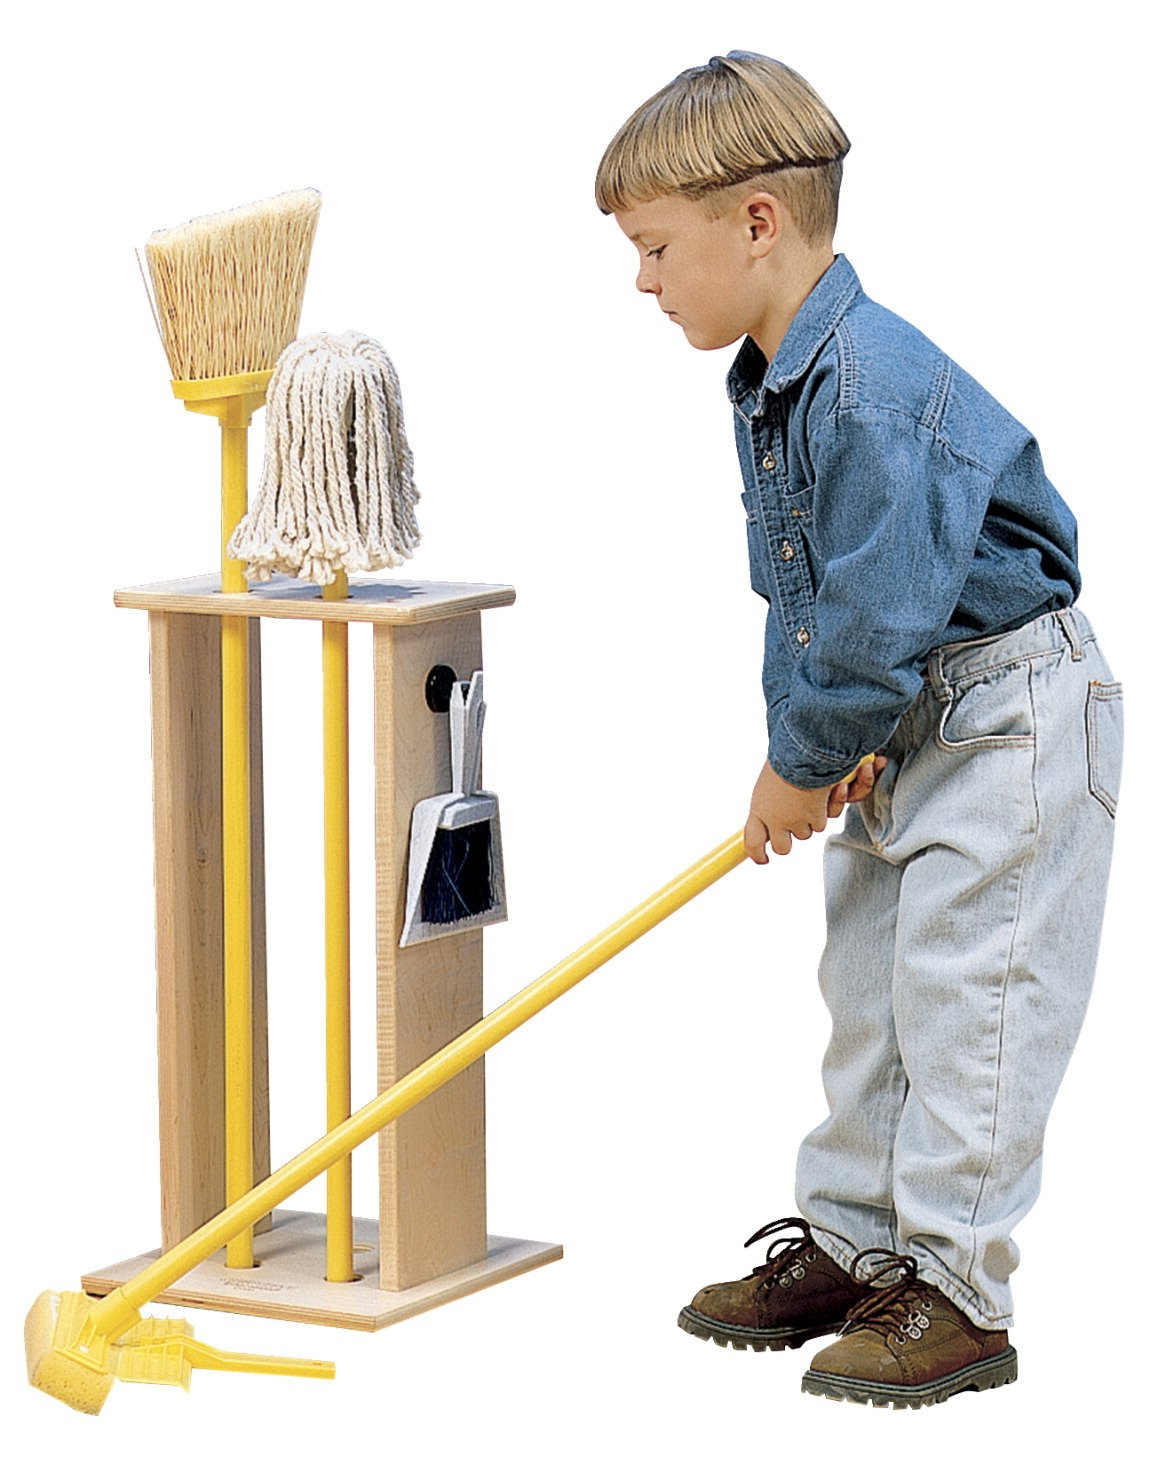 Childcraft Housecleaning Stand with Tools, 11-1/2 x 11-1/2 x 23-1/4 Inches, Set of 5